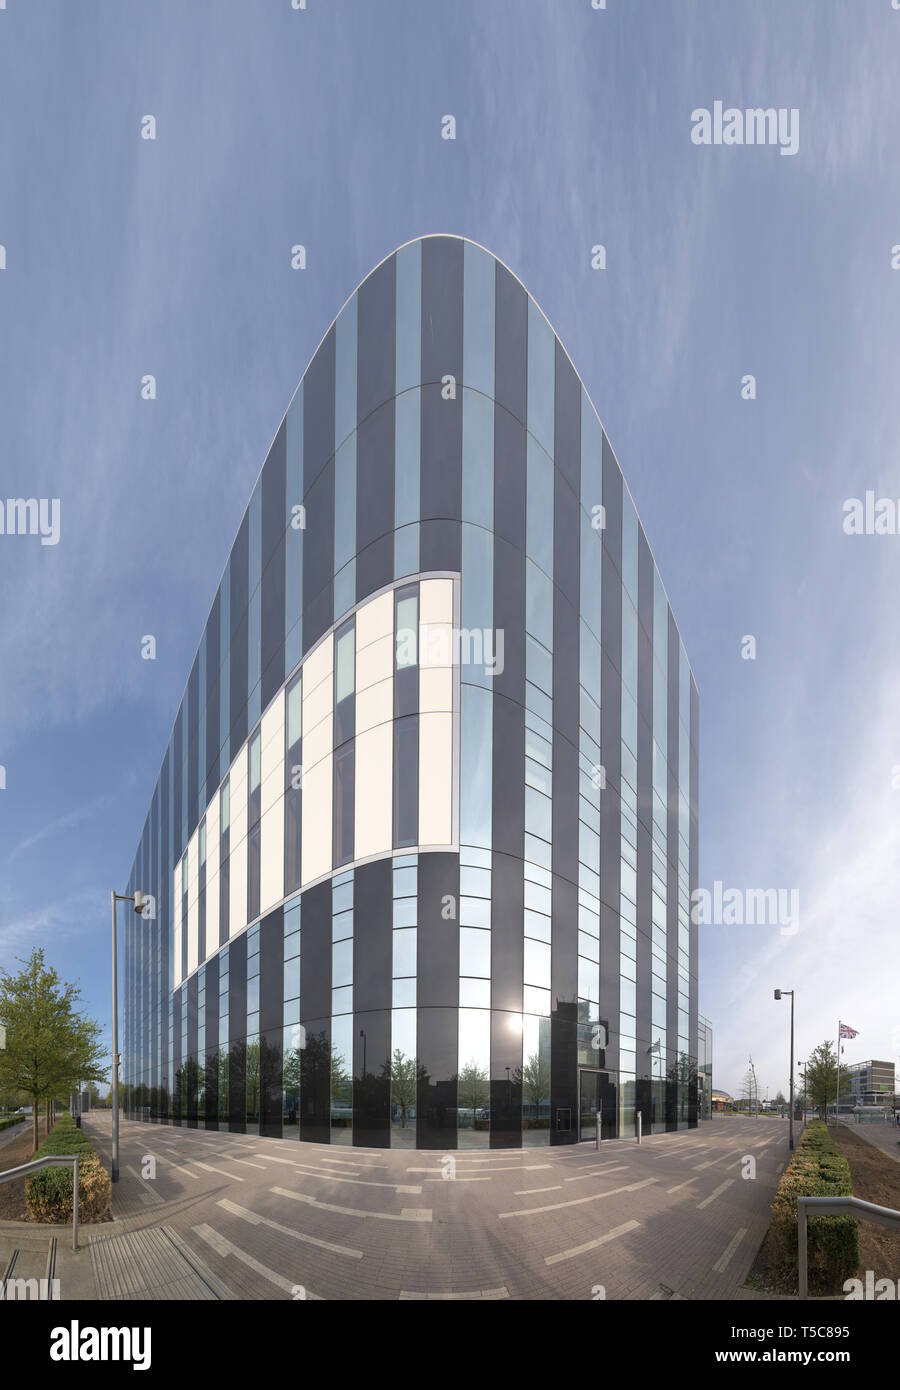 The modern, glass and steel, local government building called Cube at the town centre of Corby, England. - Stock Image